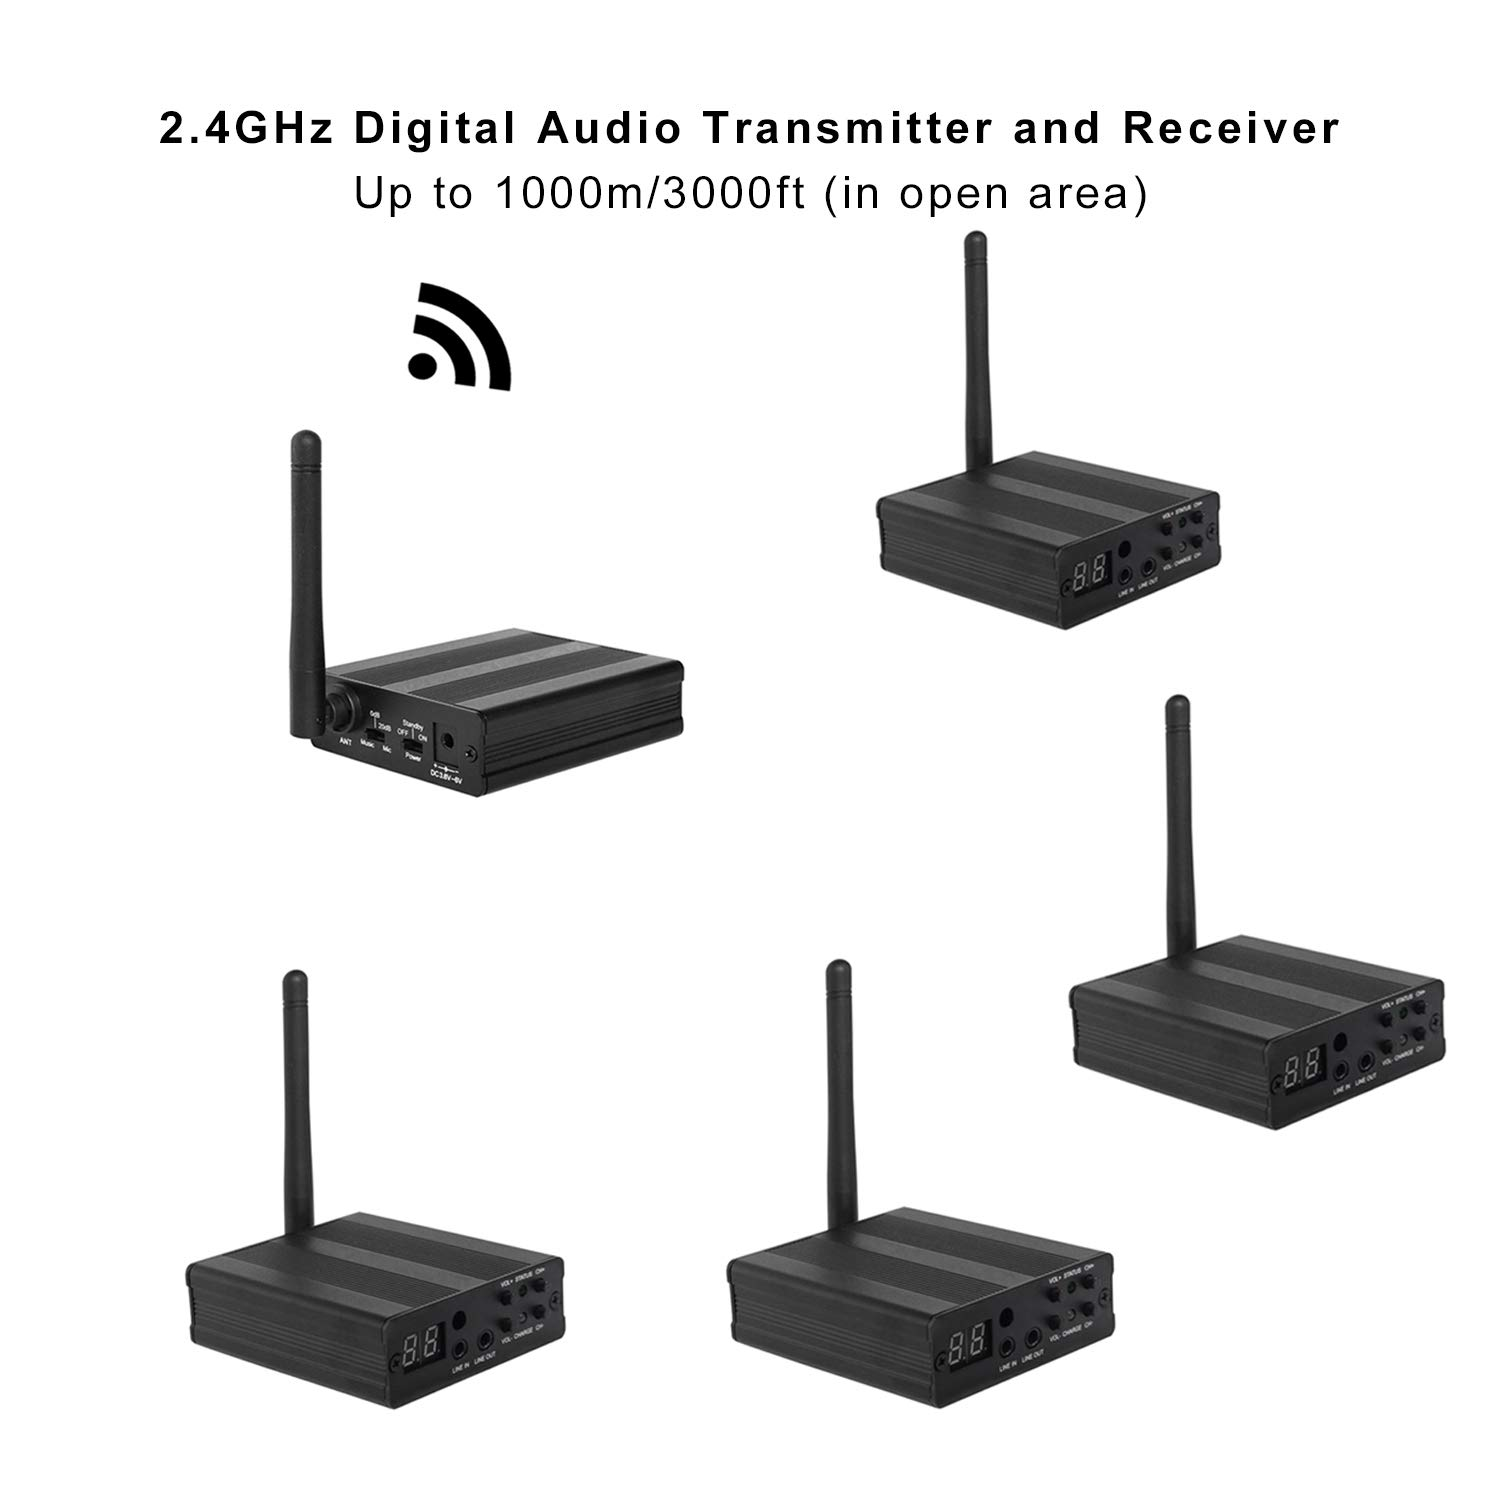 TP-WIRELESS 2.4GHz Long Range Digital Audio Transmission for TV Watching, Headphone, PC,Amplifier and Active Loudspeakers (3000ft 1 Transmitter and 4 Receiver)